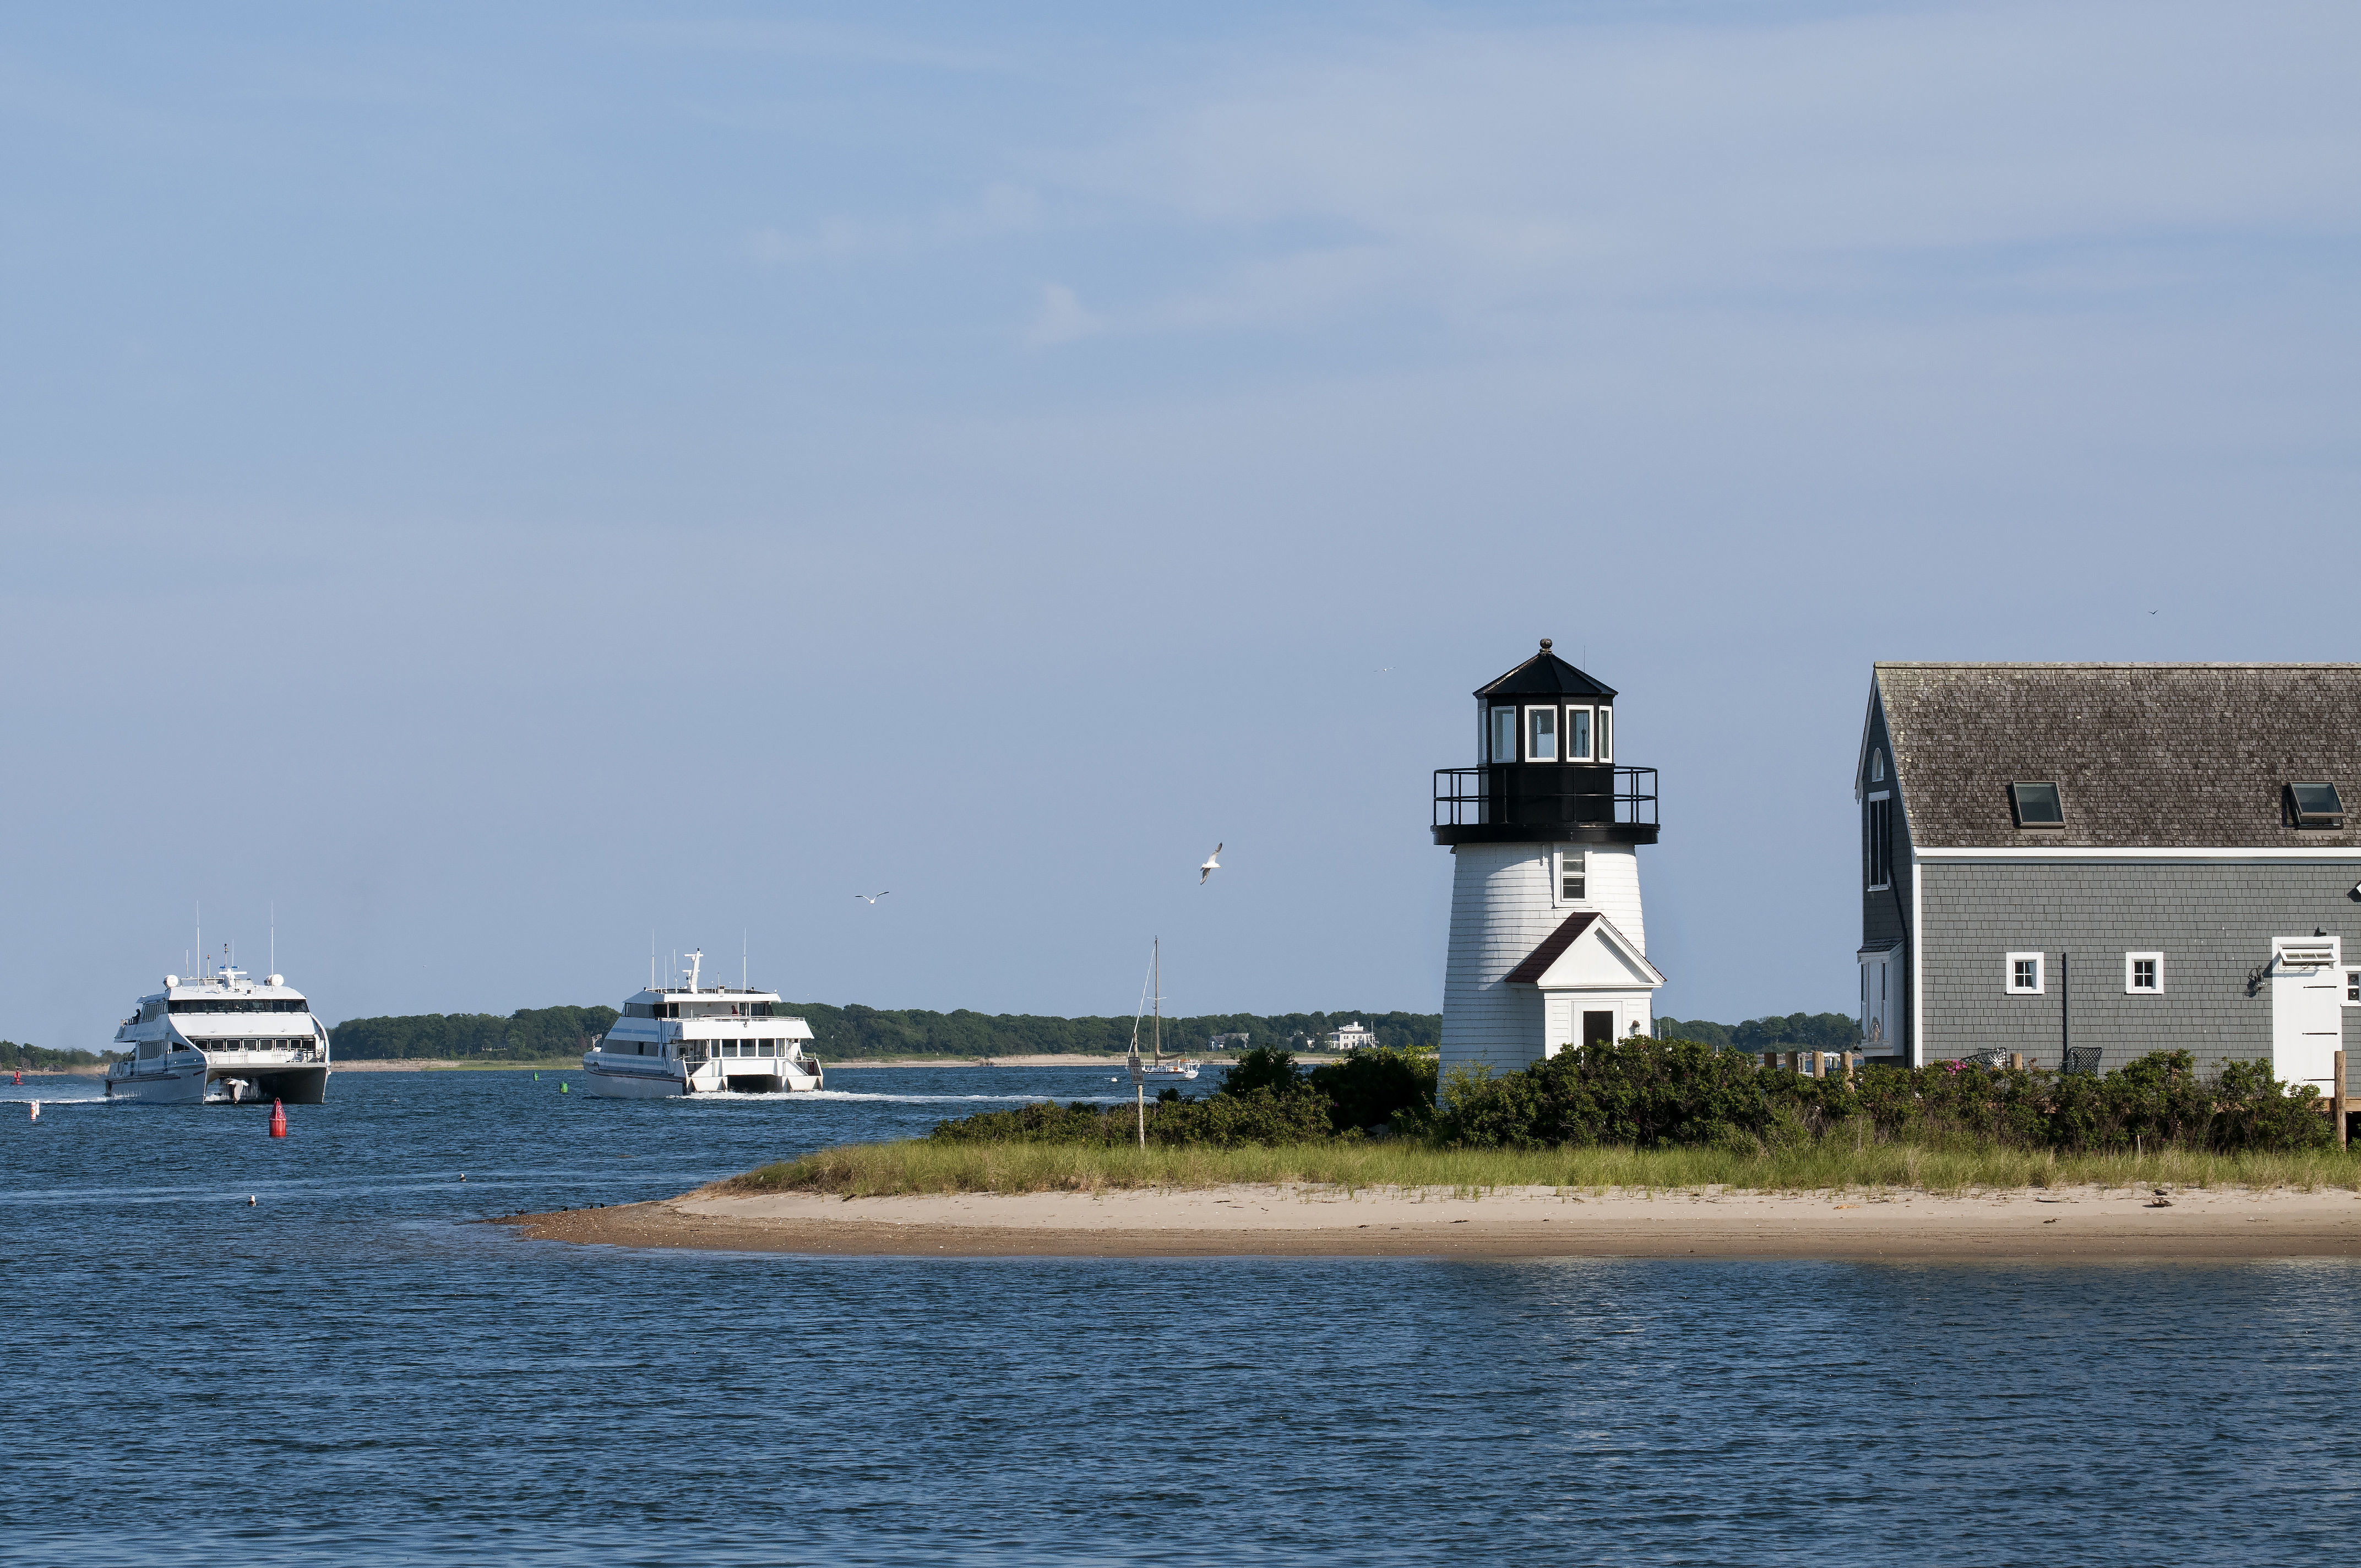 Hyannis Harbor in Hyannis, MA, United States - harbor